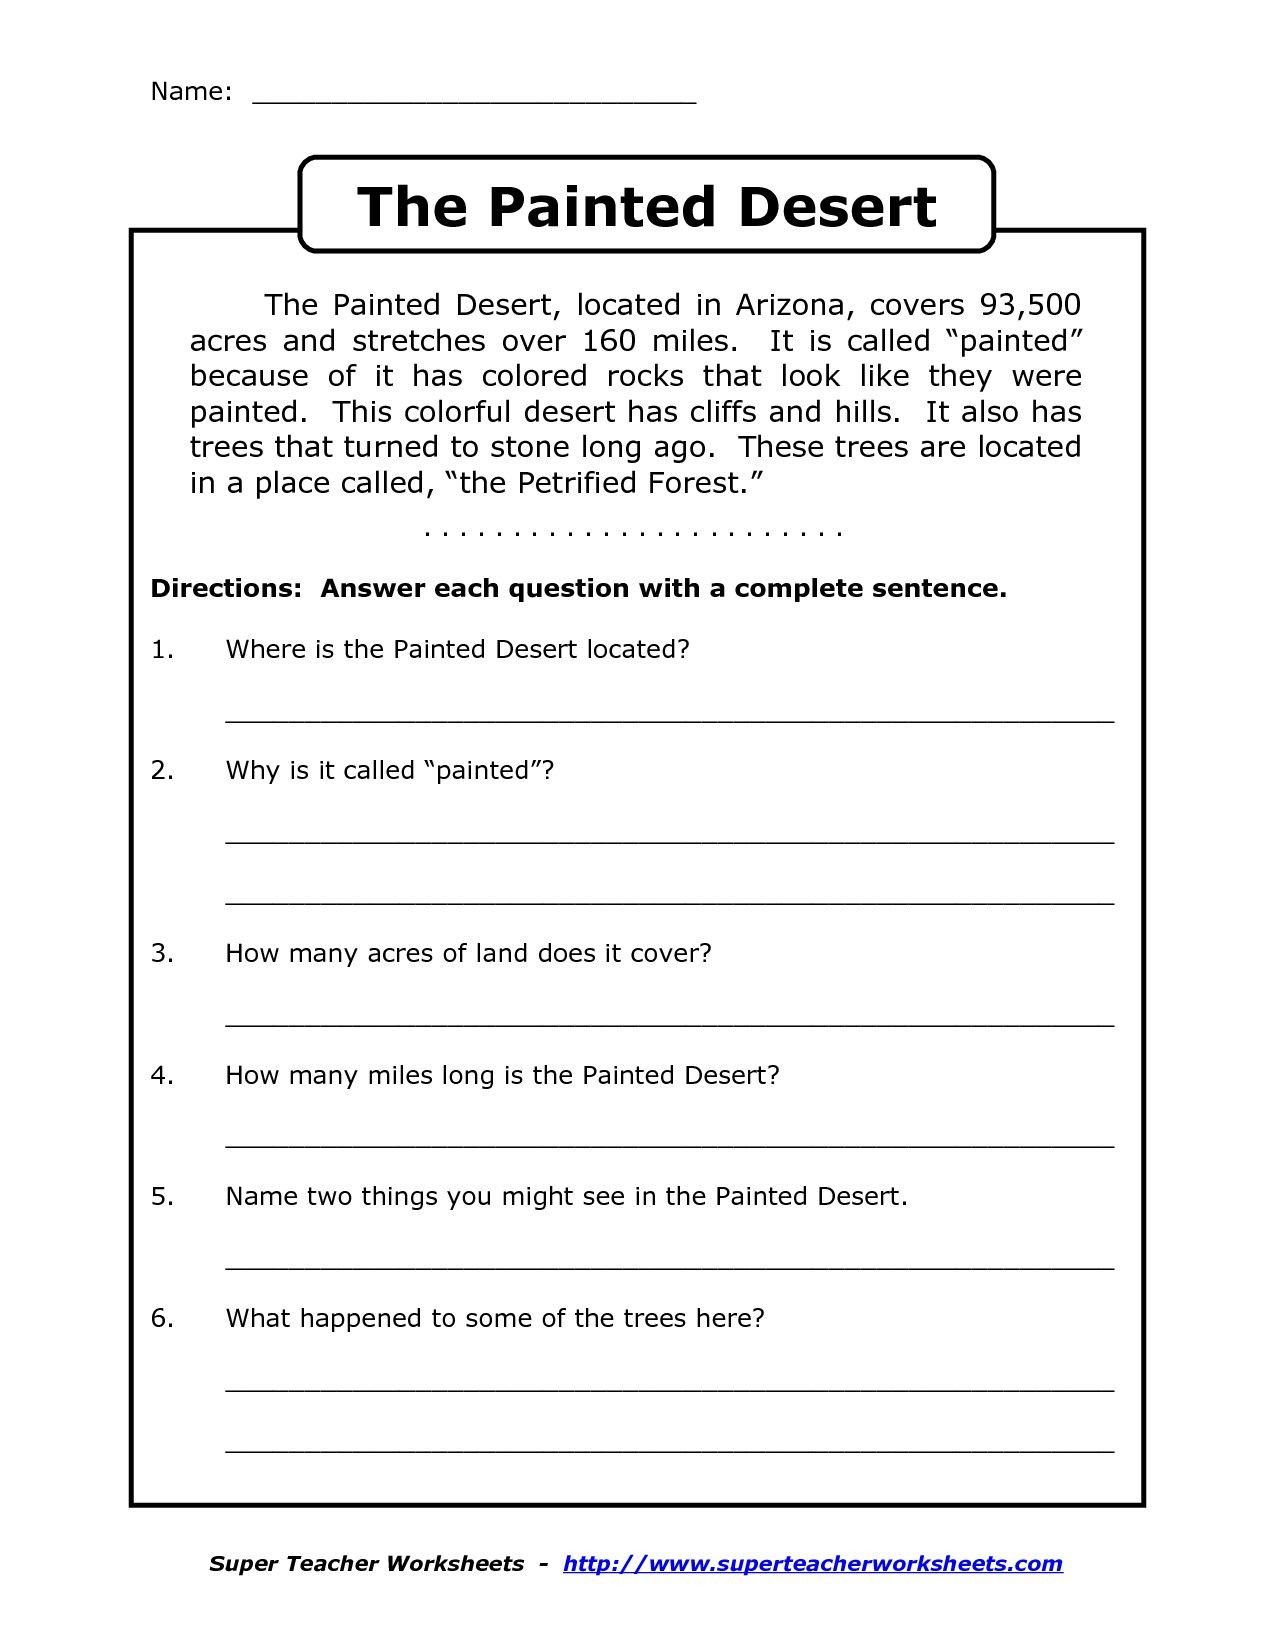 4th Grade Sequencing Worksheets Prehension Worksheet for 1st Grade Y2 P3 the Painted